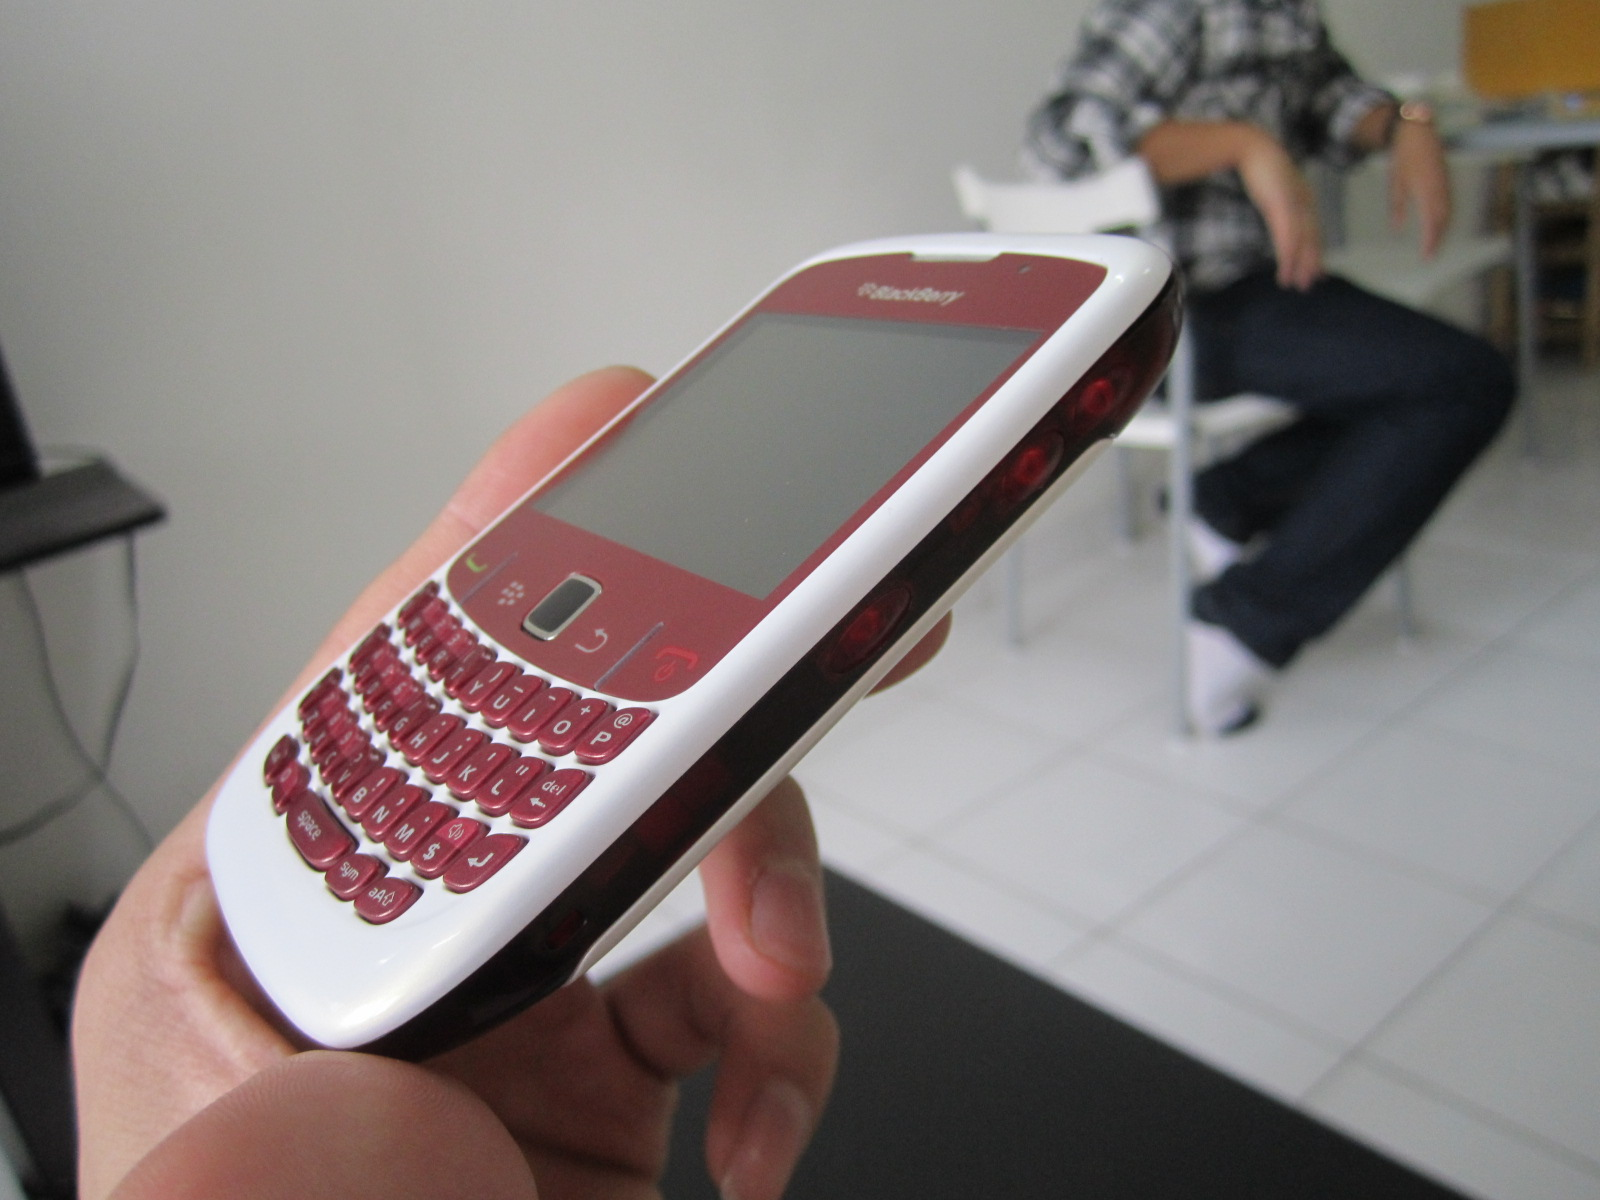 blackberry curve 8900 red javelin leather folio case | Wallpaper ...